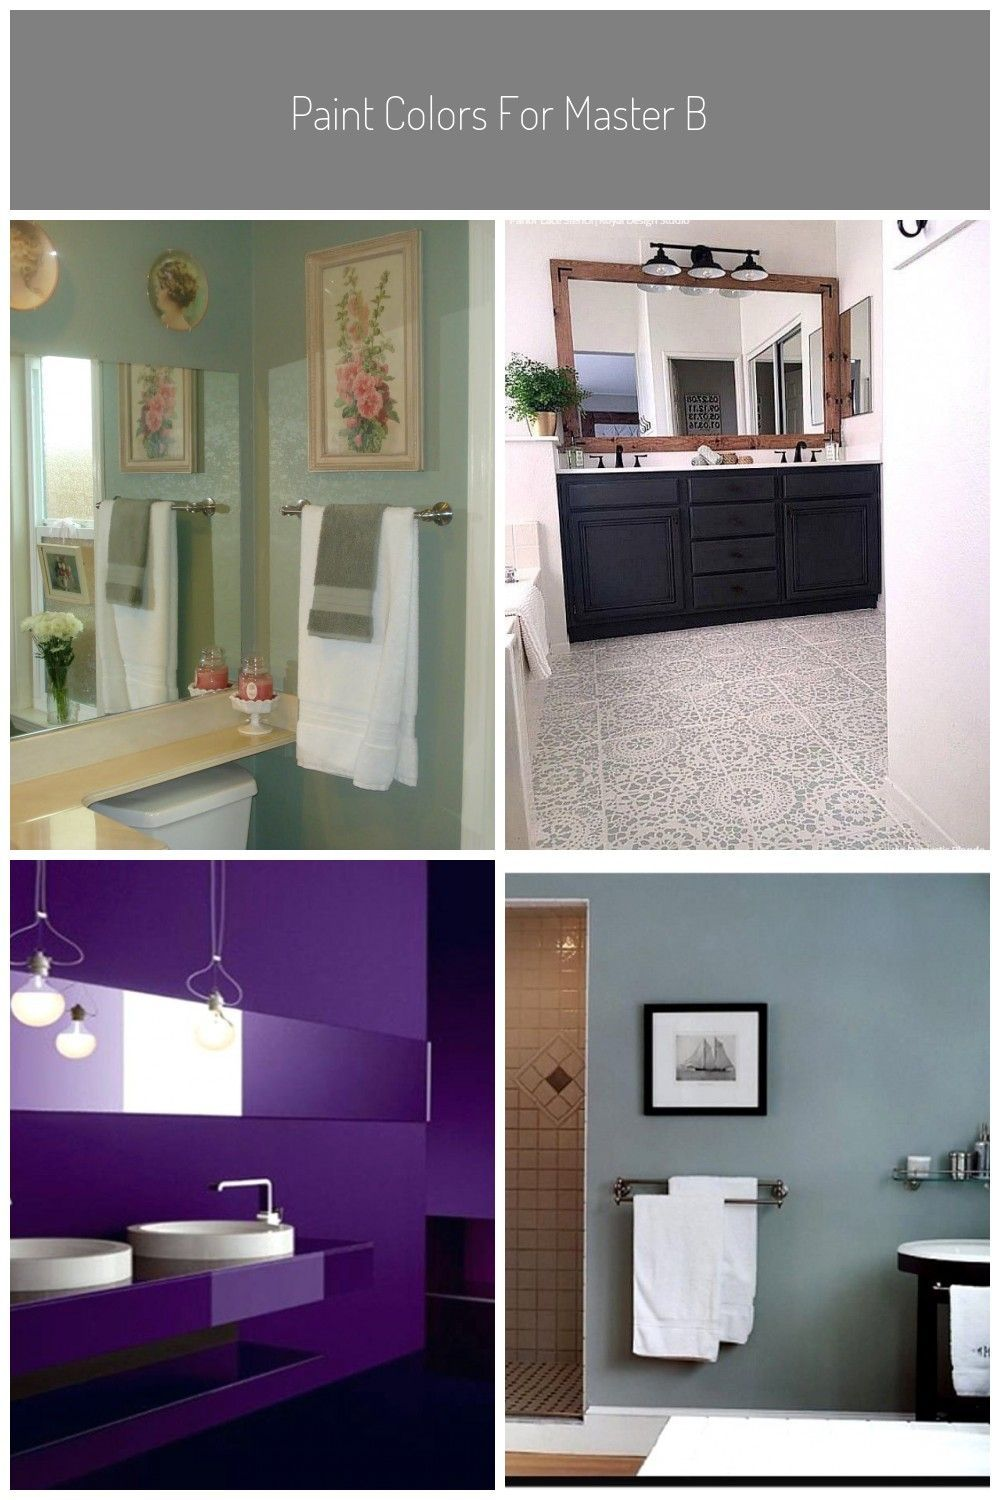 Paint Colors For Master Bedroom And Bathroom Badezimmer Dunkel Streichen Paint Badezimme In 2020 Master Bedroom Colors Bedroom Paint Colors Master Bathroom Colors